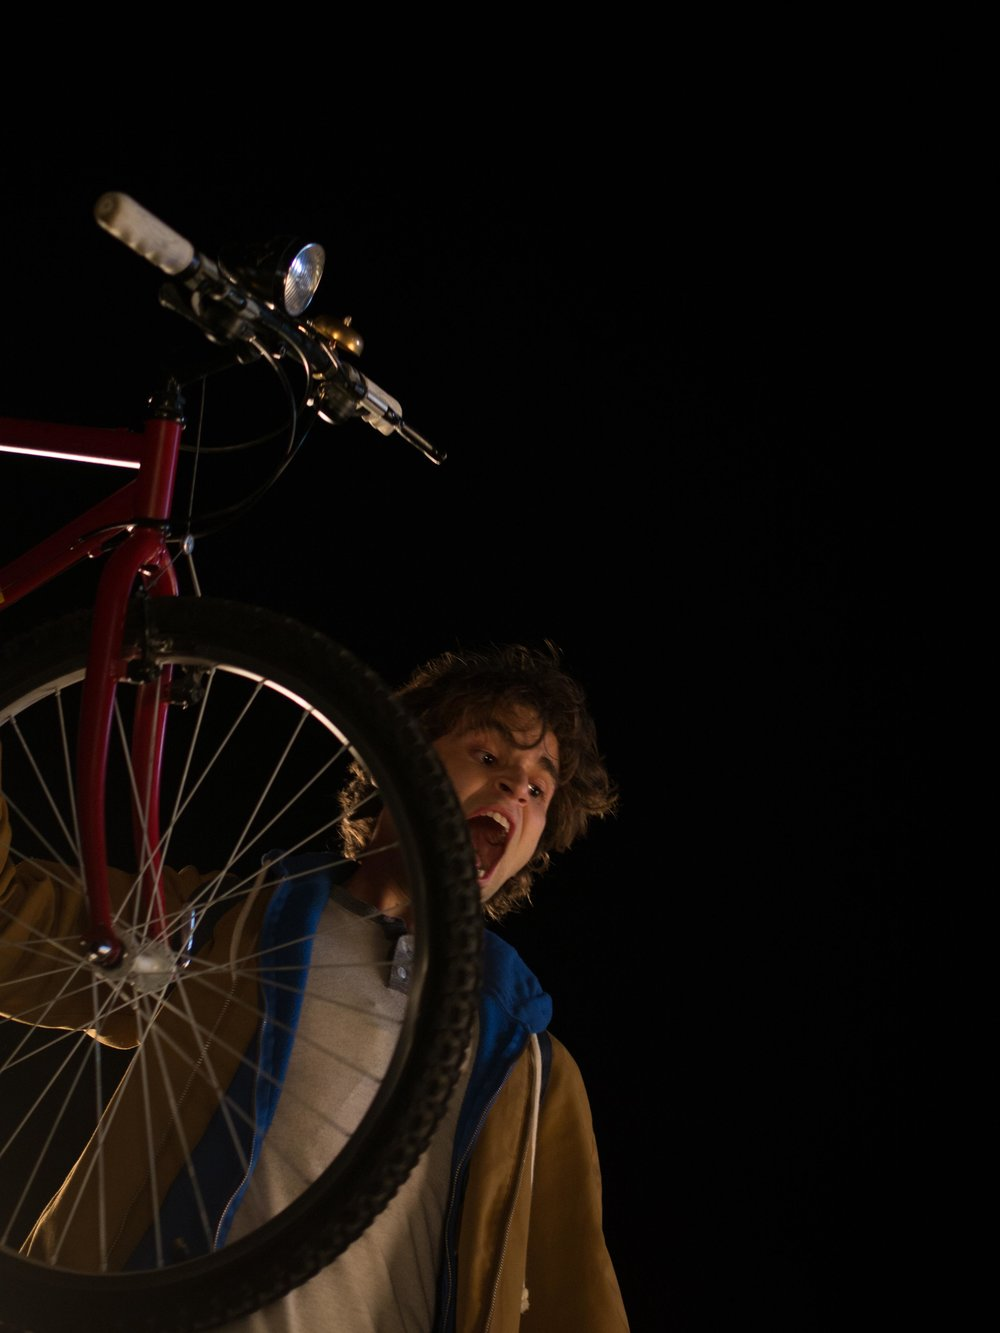 Jon (Jake Borelli) About To Throw Bike Off The Bridge 1.jpg